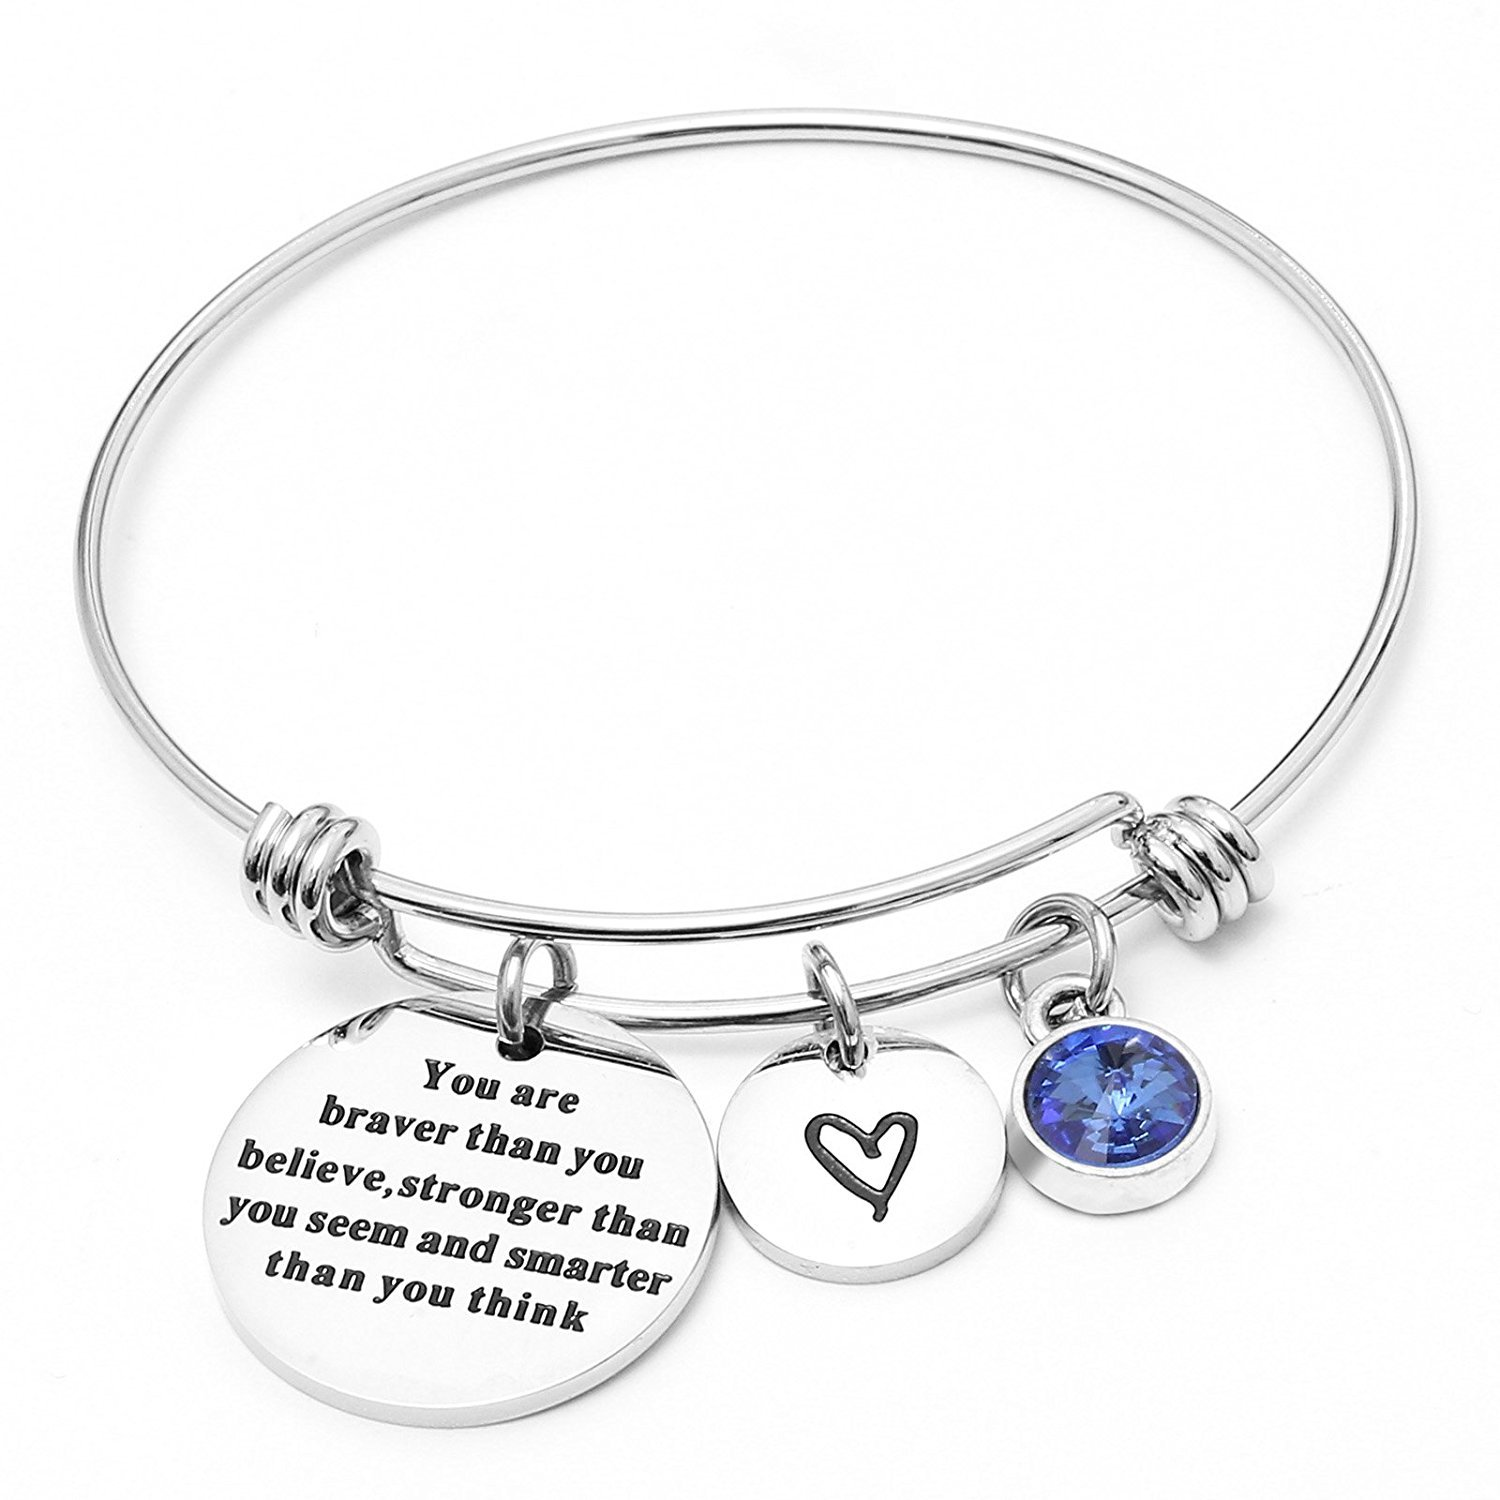 Angel's Draw Home You Are Braver than You Believe Adjustable Bangle Bracelets With 12 Months Color Birthstone for Women Girls Gift (Sapphire- September)